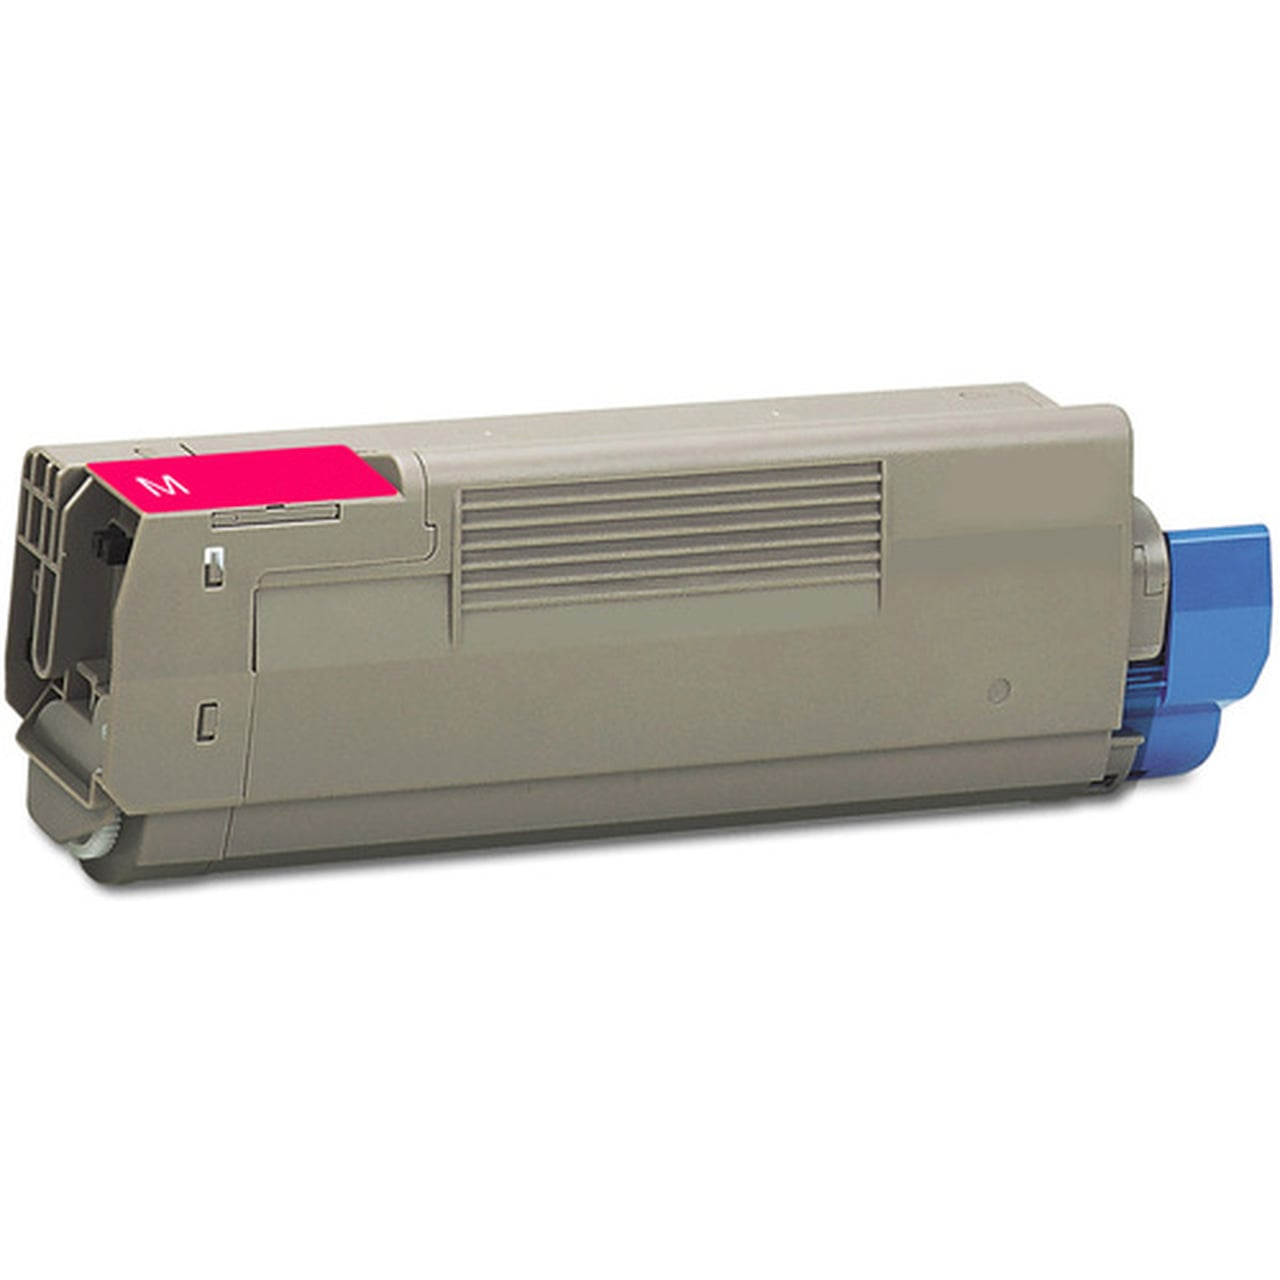 43324418 Toner Cartridge - Okidata Compatible (Magenta)